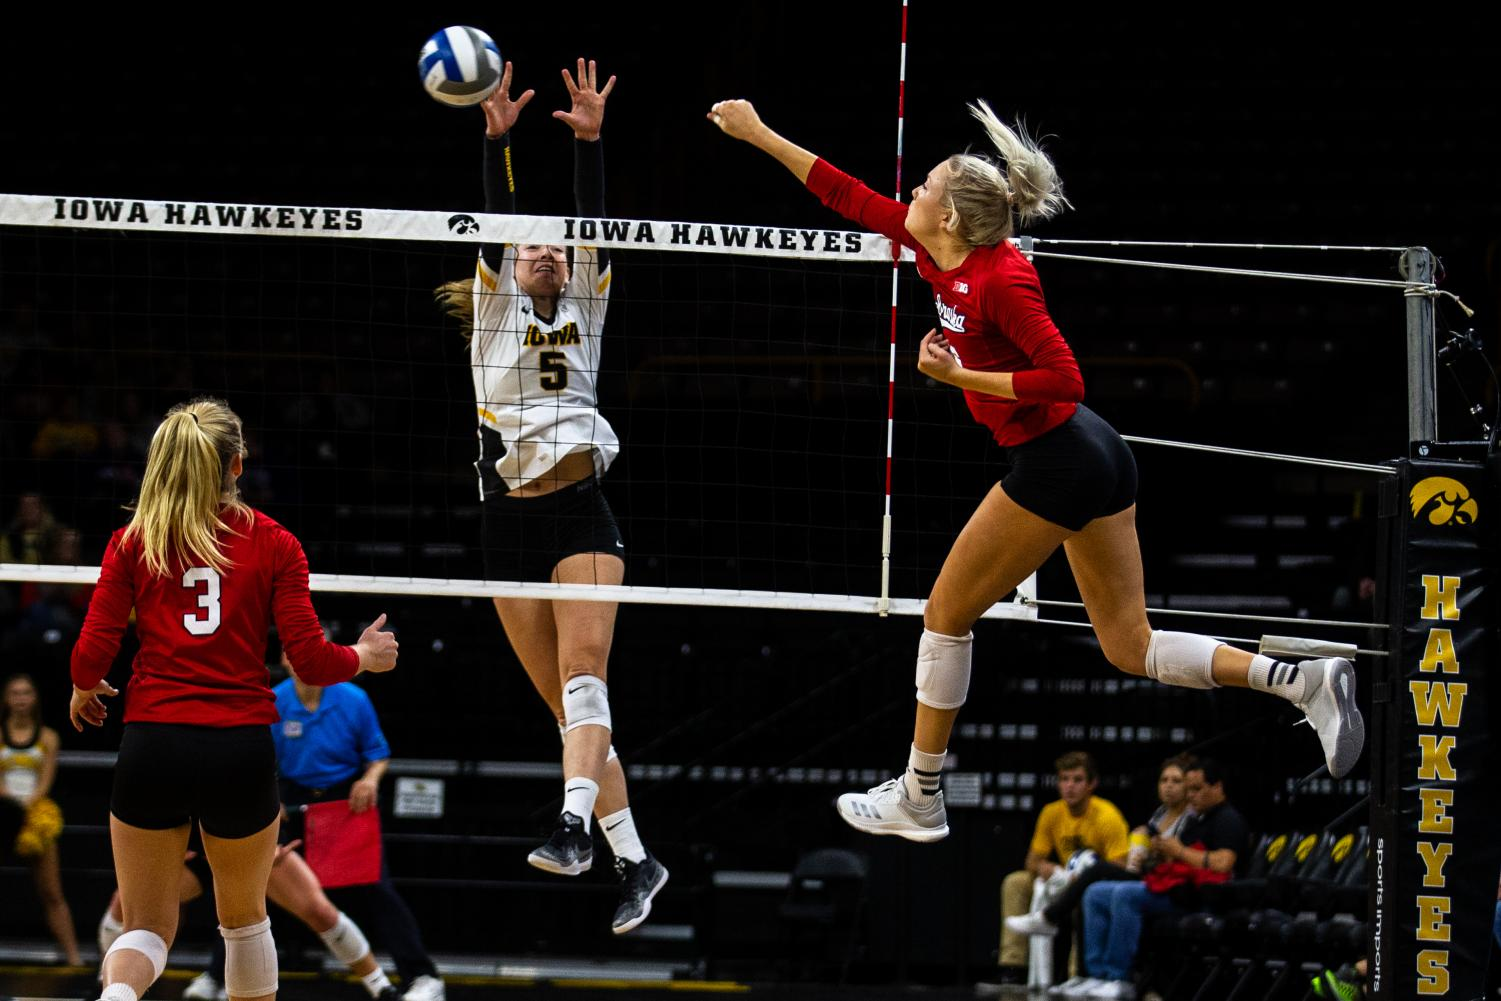 Outside hitter Meghan Buzzerio jumps to block a spike during Iowa's game against Nebraska at Carver-Hawkeye Arena on Nov. 7, 2018. The Hawkeyes were defeated 0-3.